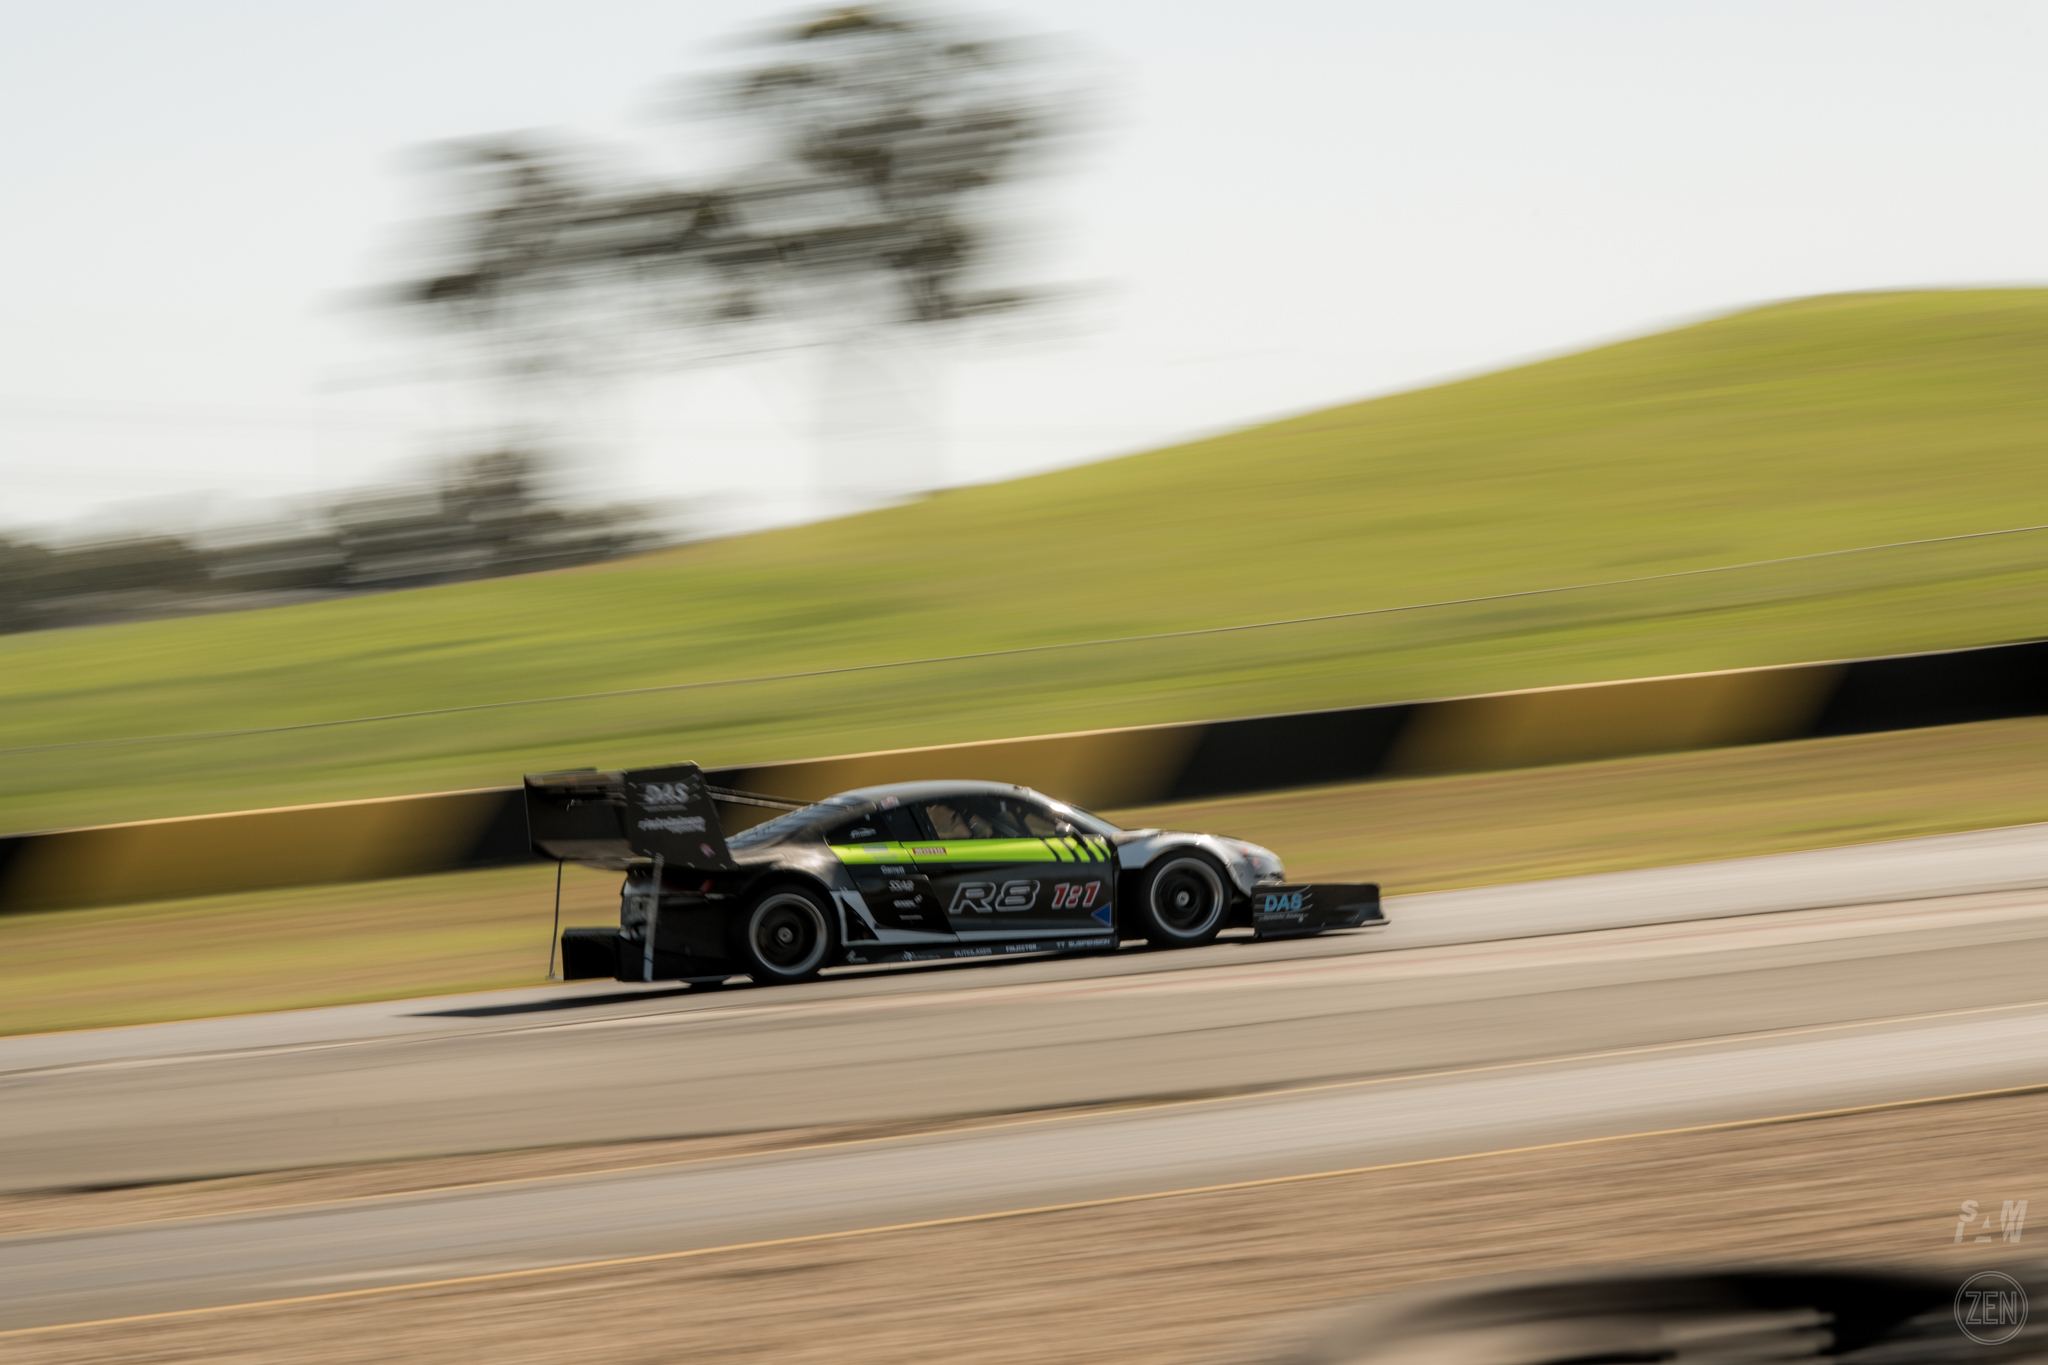 2019-10-19 - WTAC Day 2 005